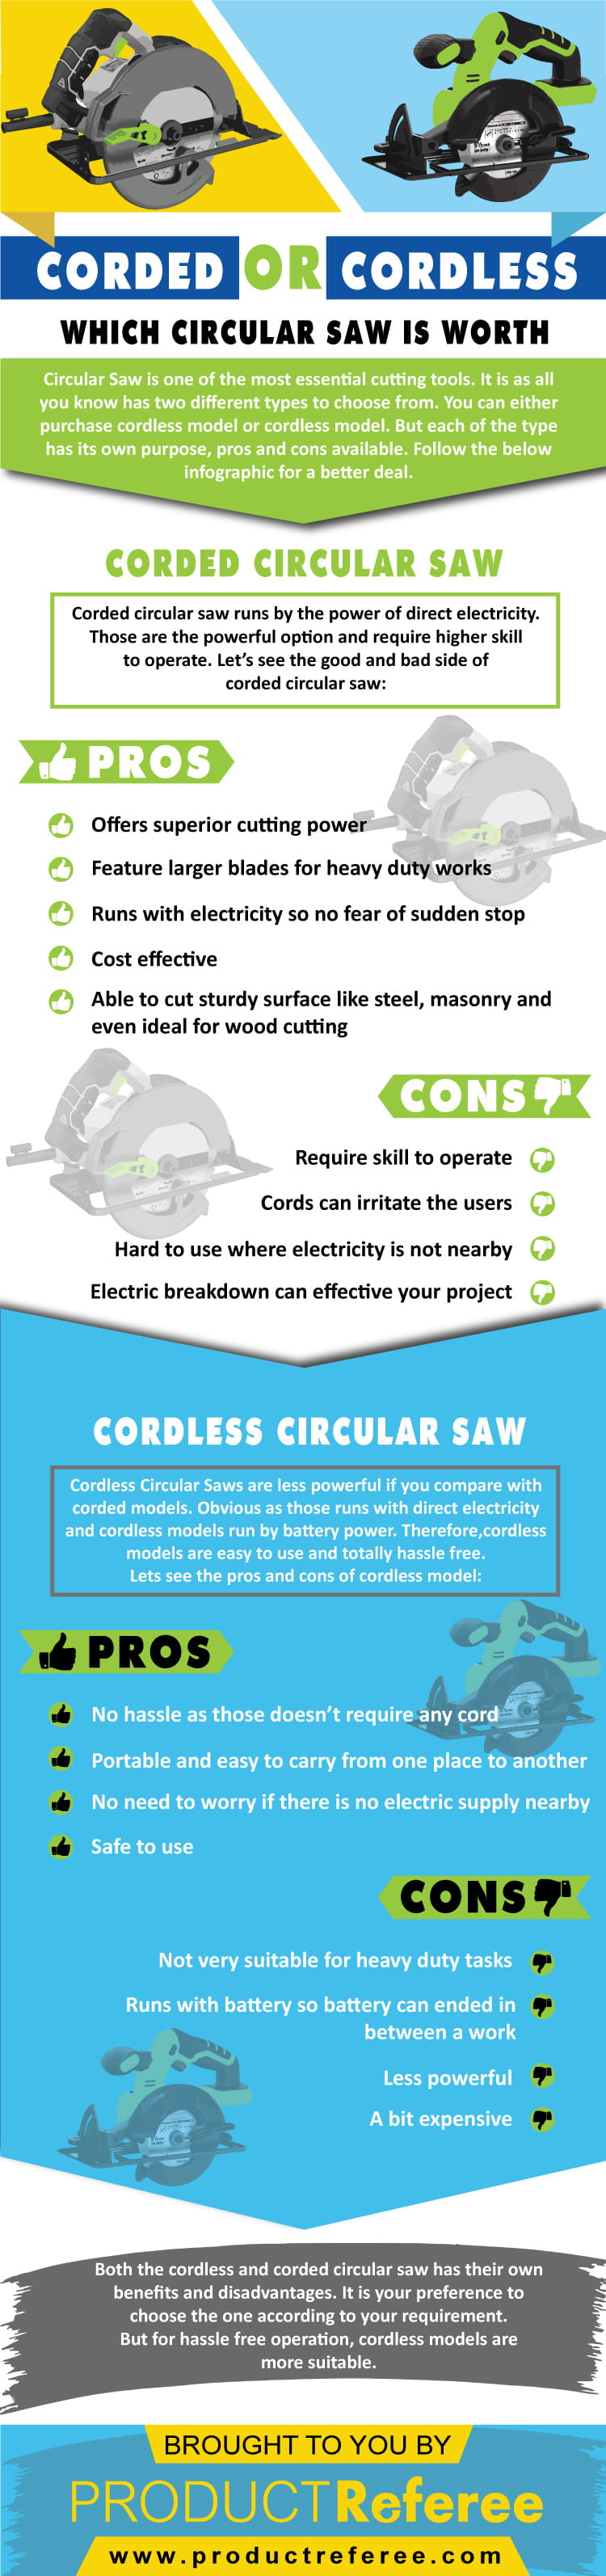 corded vs cordless cutting toos